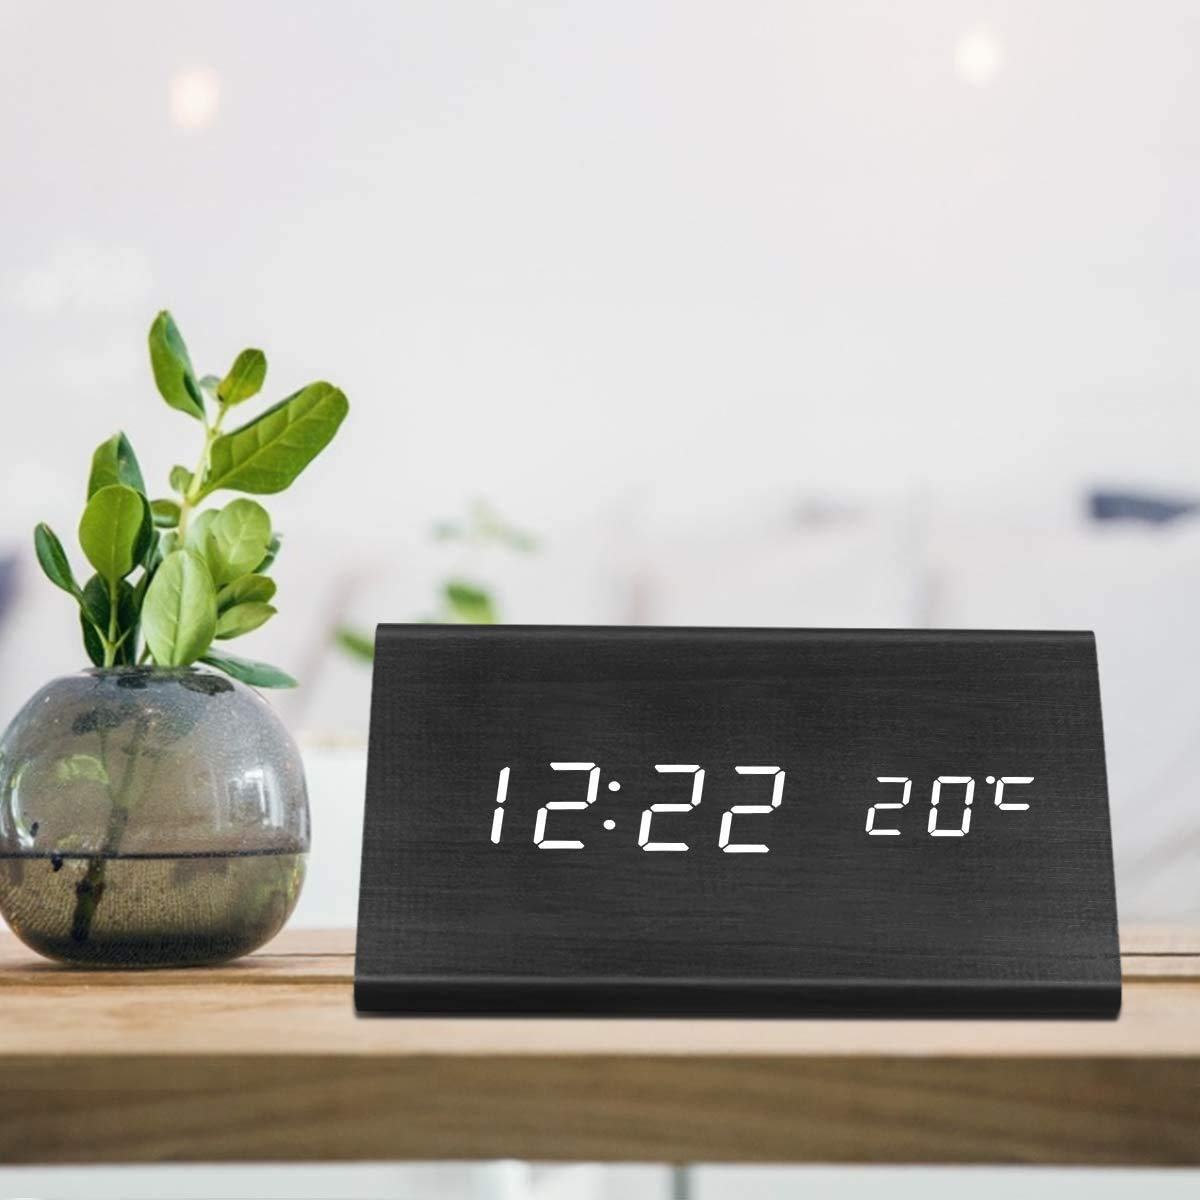 Wooden Digital Alarm Clock 2020 Updated Voice Command Electric Led Bedside Travel Triangle Alarm Clock Display Time Date Temperature For Office Home Buy Online In Colombia At Desertcart Co Productid 190964959